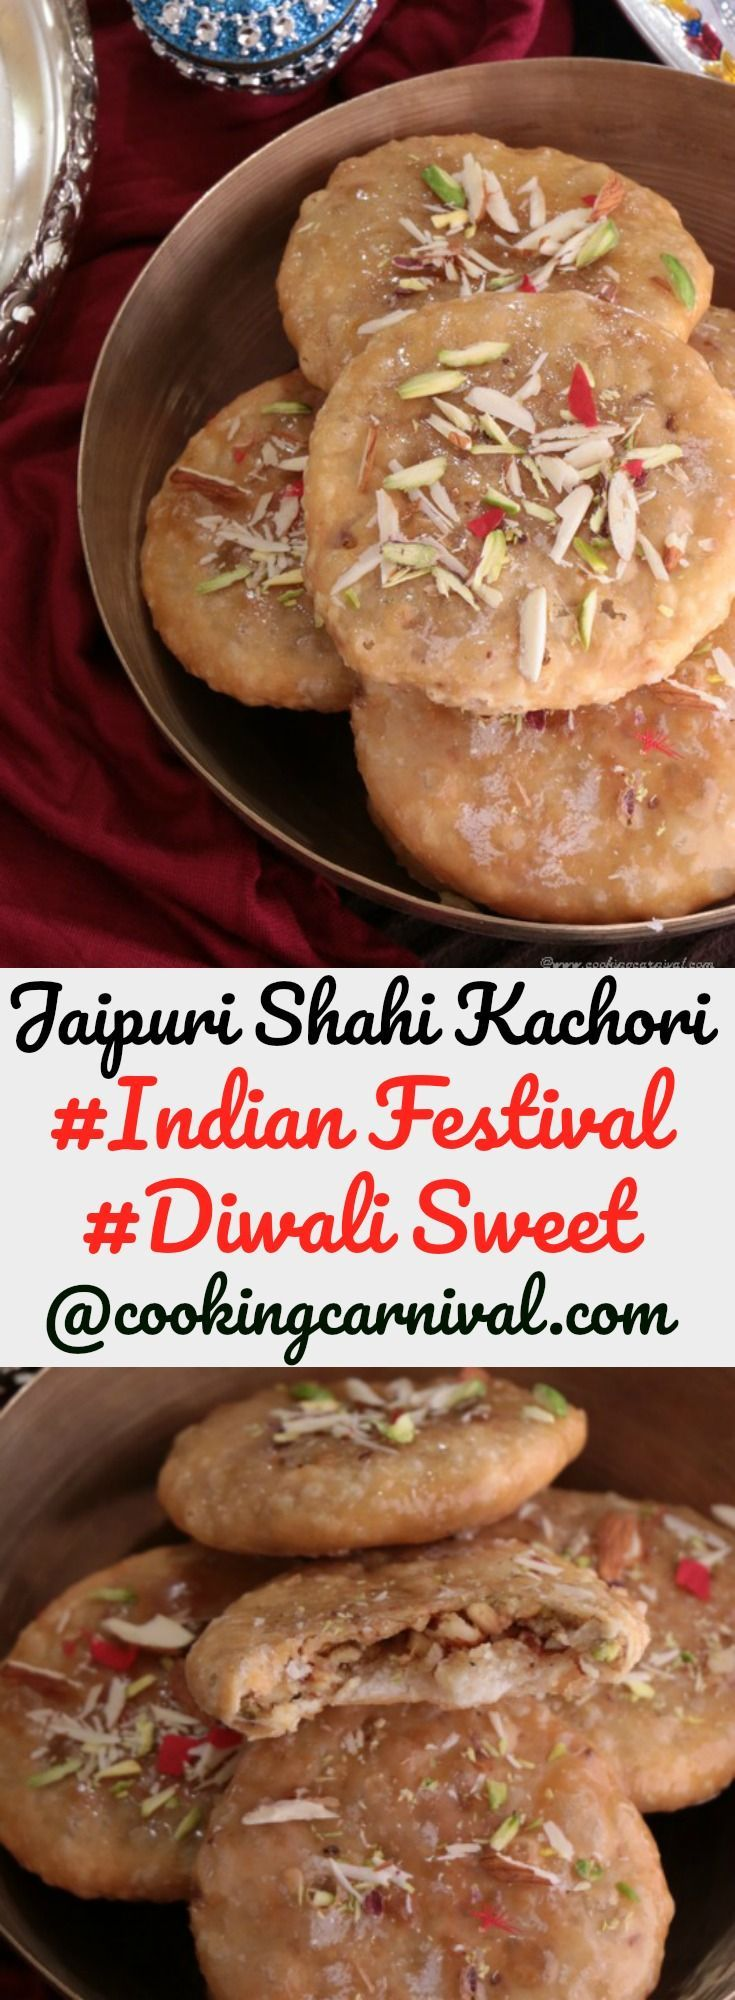 Jaipuri Shahi Kachori is Mawa and Dry fruit stuffed, coated with sugar syrup can be prepared on any Occasion. Diwali is coming in few days. Sweets are always an important part of this festival or I would say of any festival. Diwali is all about lights and good food.